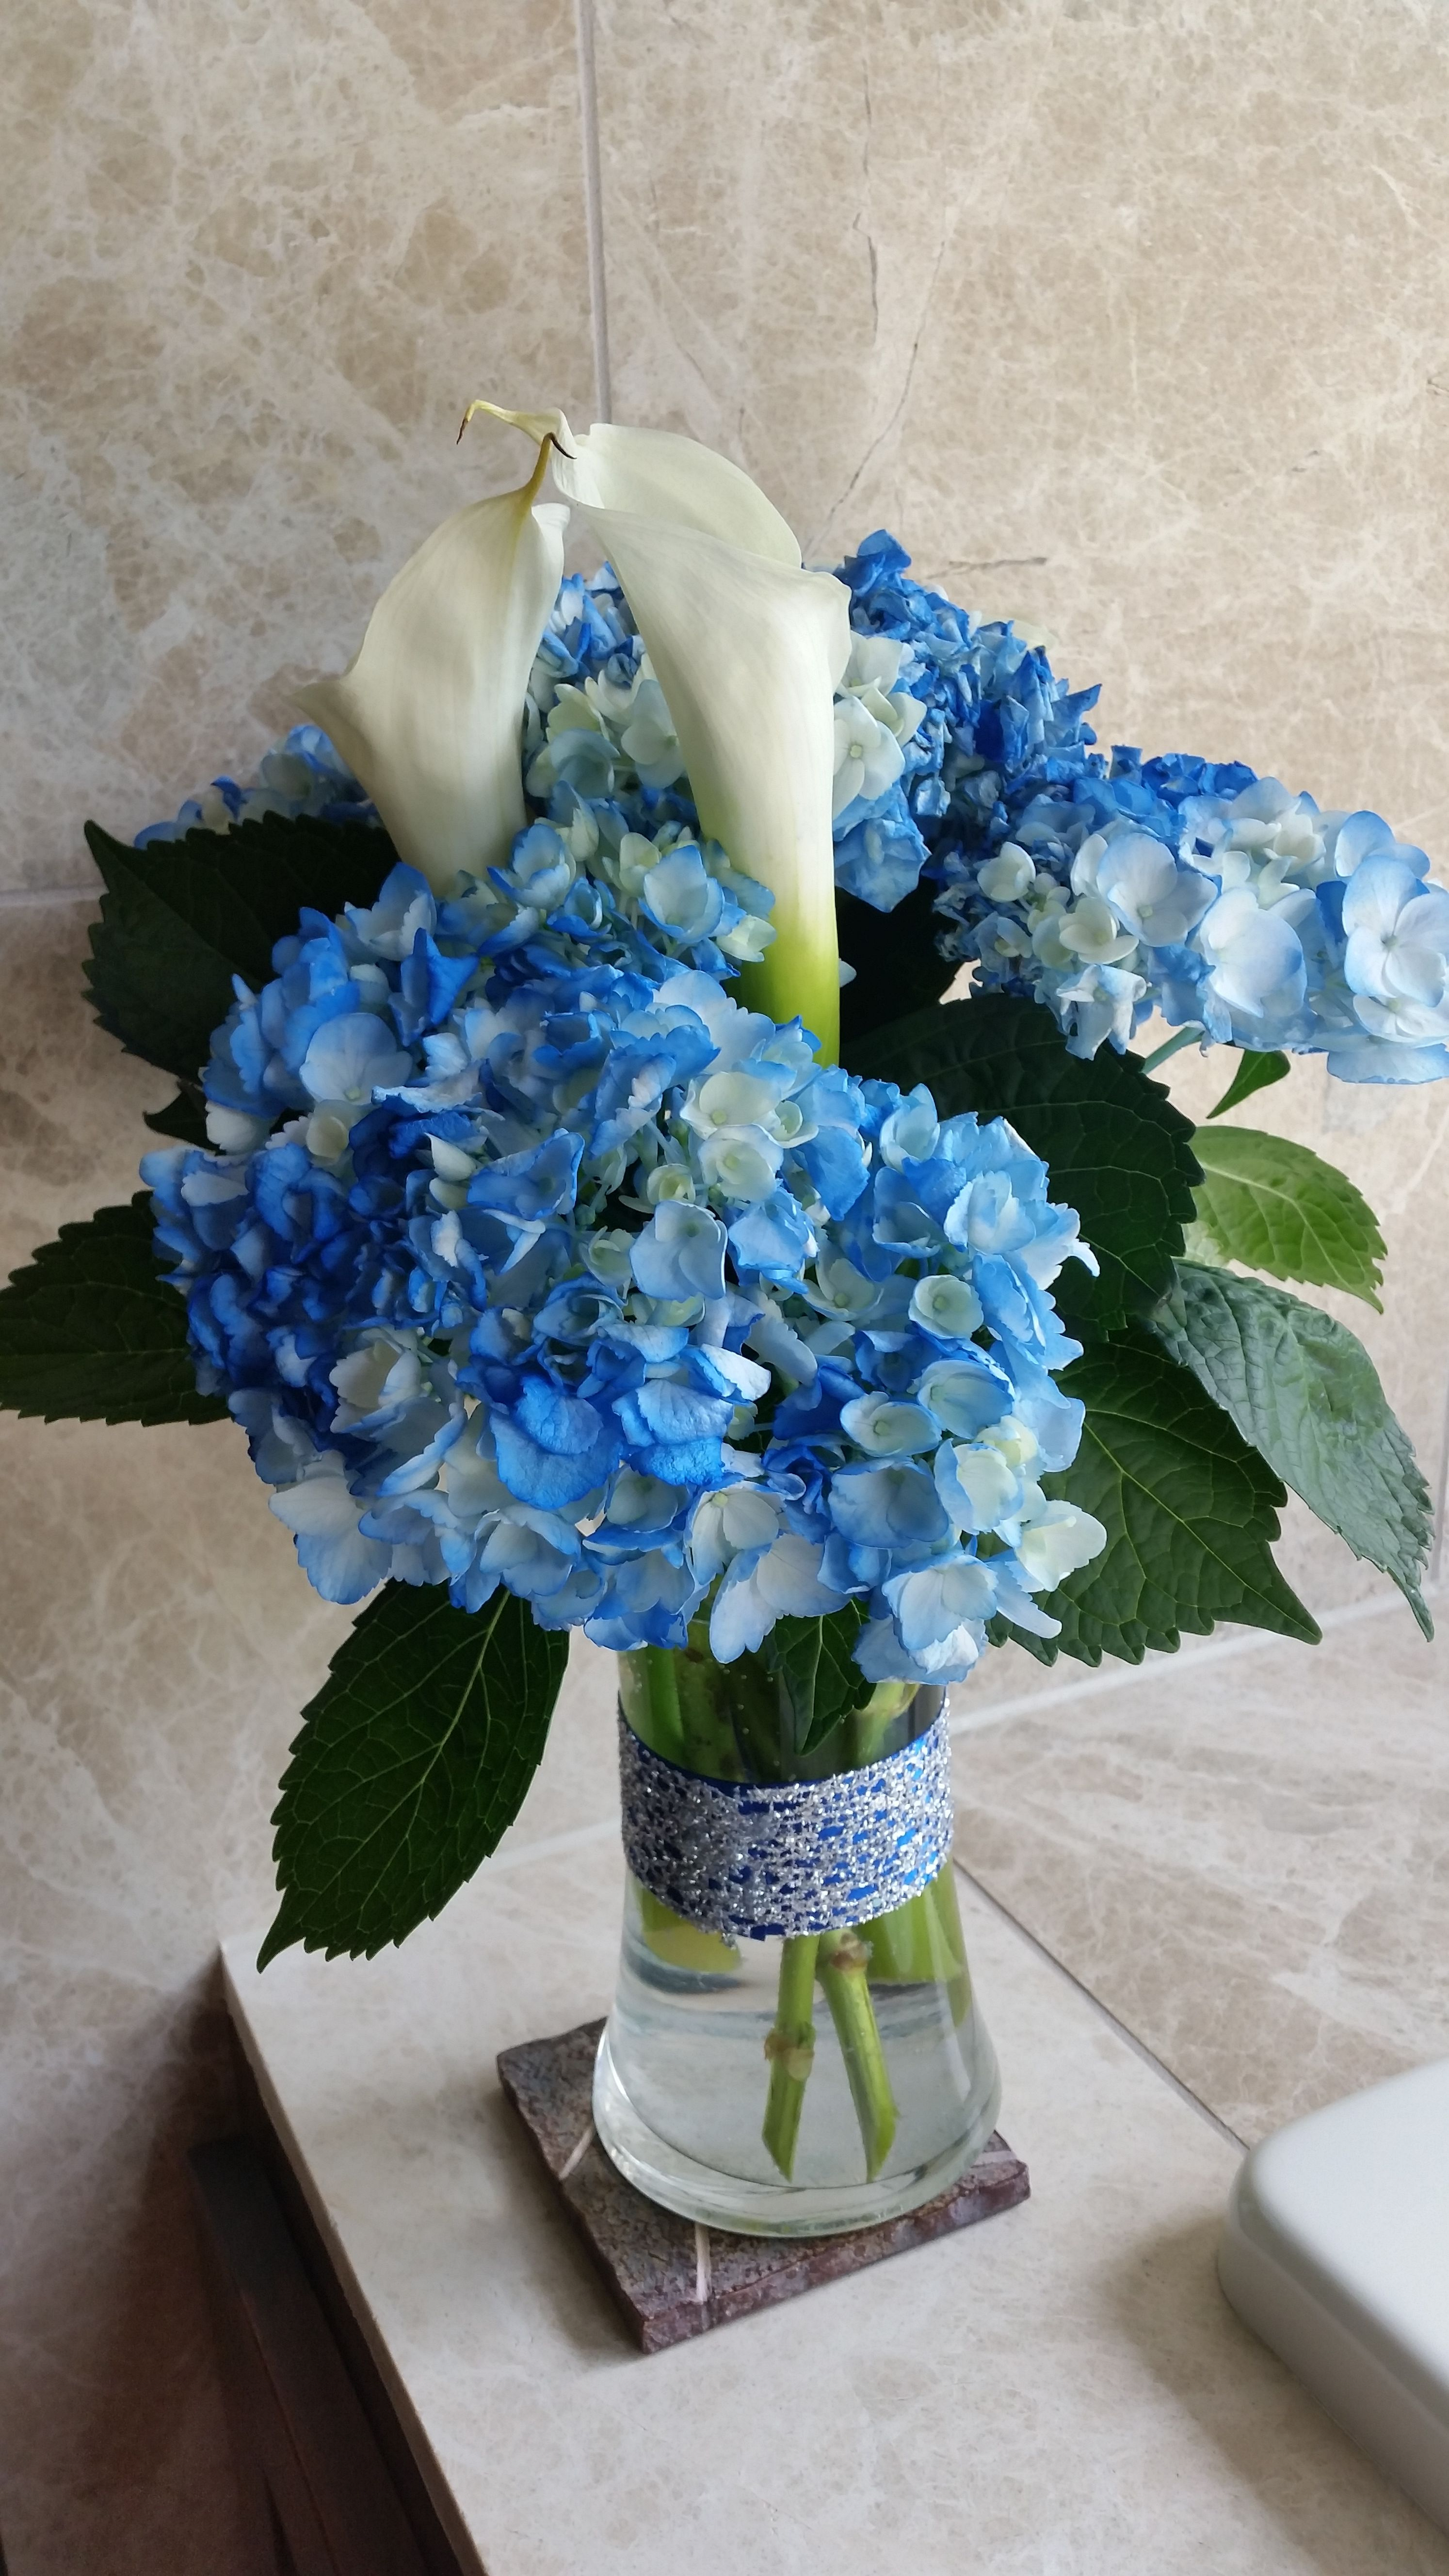 Costco Flowers Wedding.Diy Centerpieces With Flowers From Costco Goat And Panda Wedding